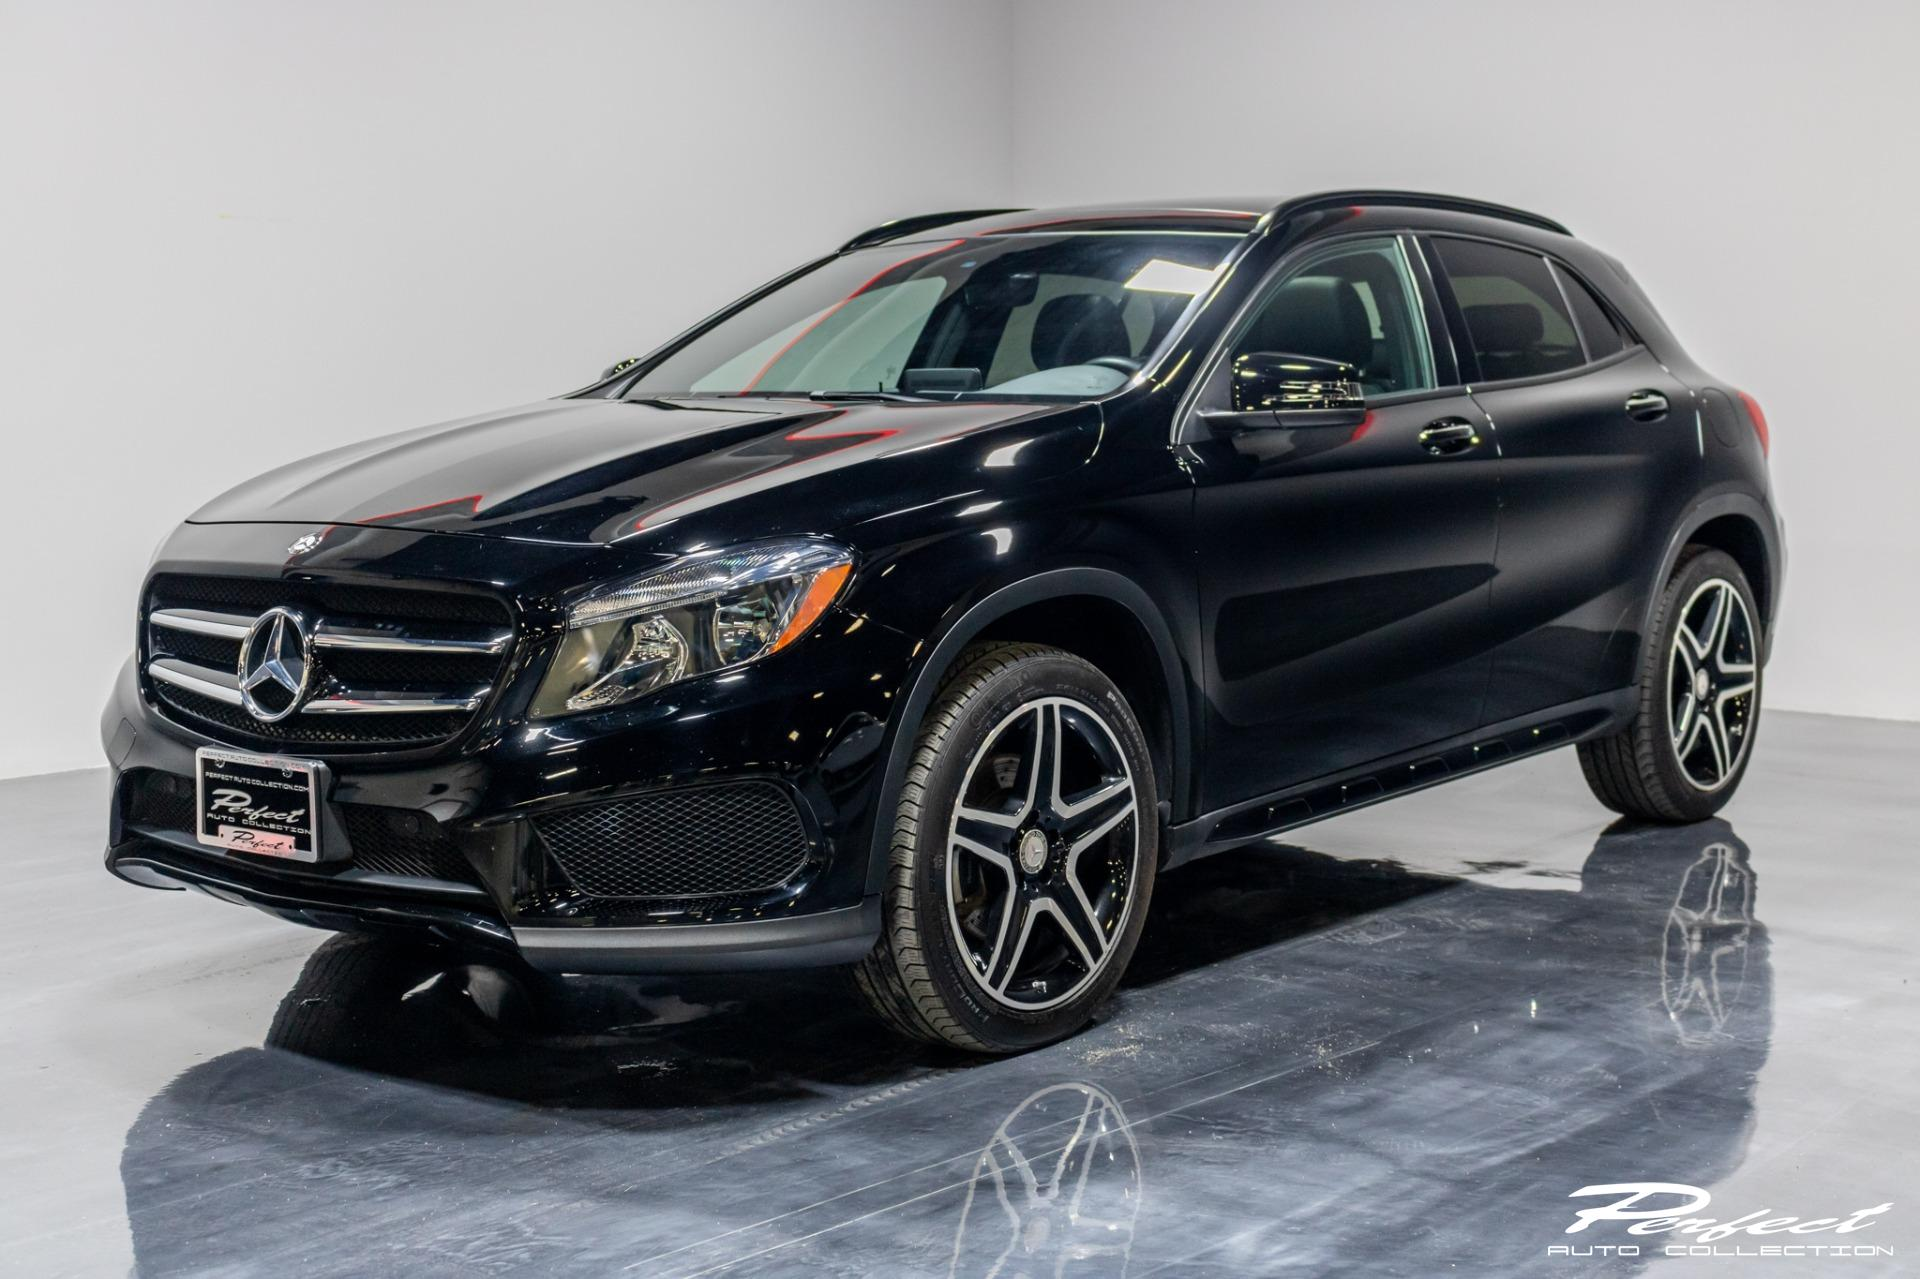 Used 2016 Mercedes-Benz GLA GLA 250 4MATIC for sale $22,493 at Perfect Auto Collection in Akron OH 44310 1